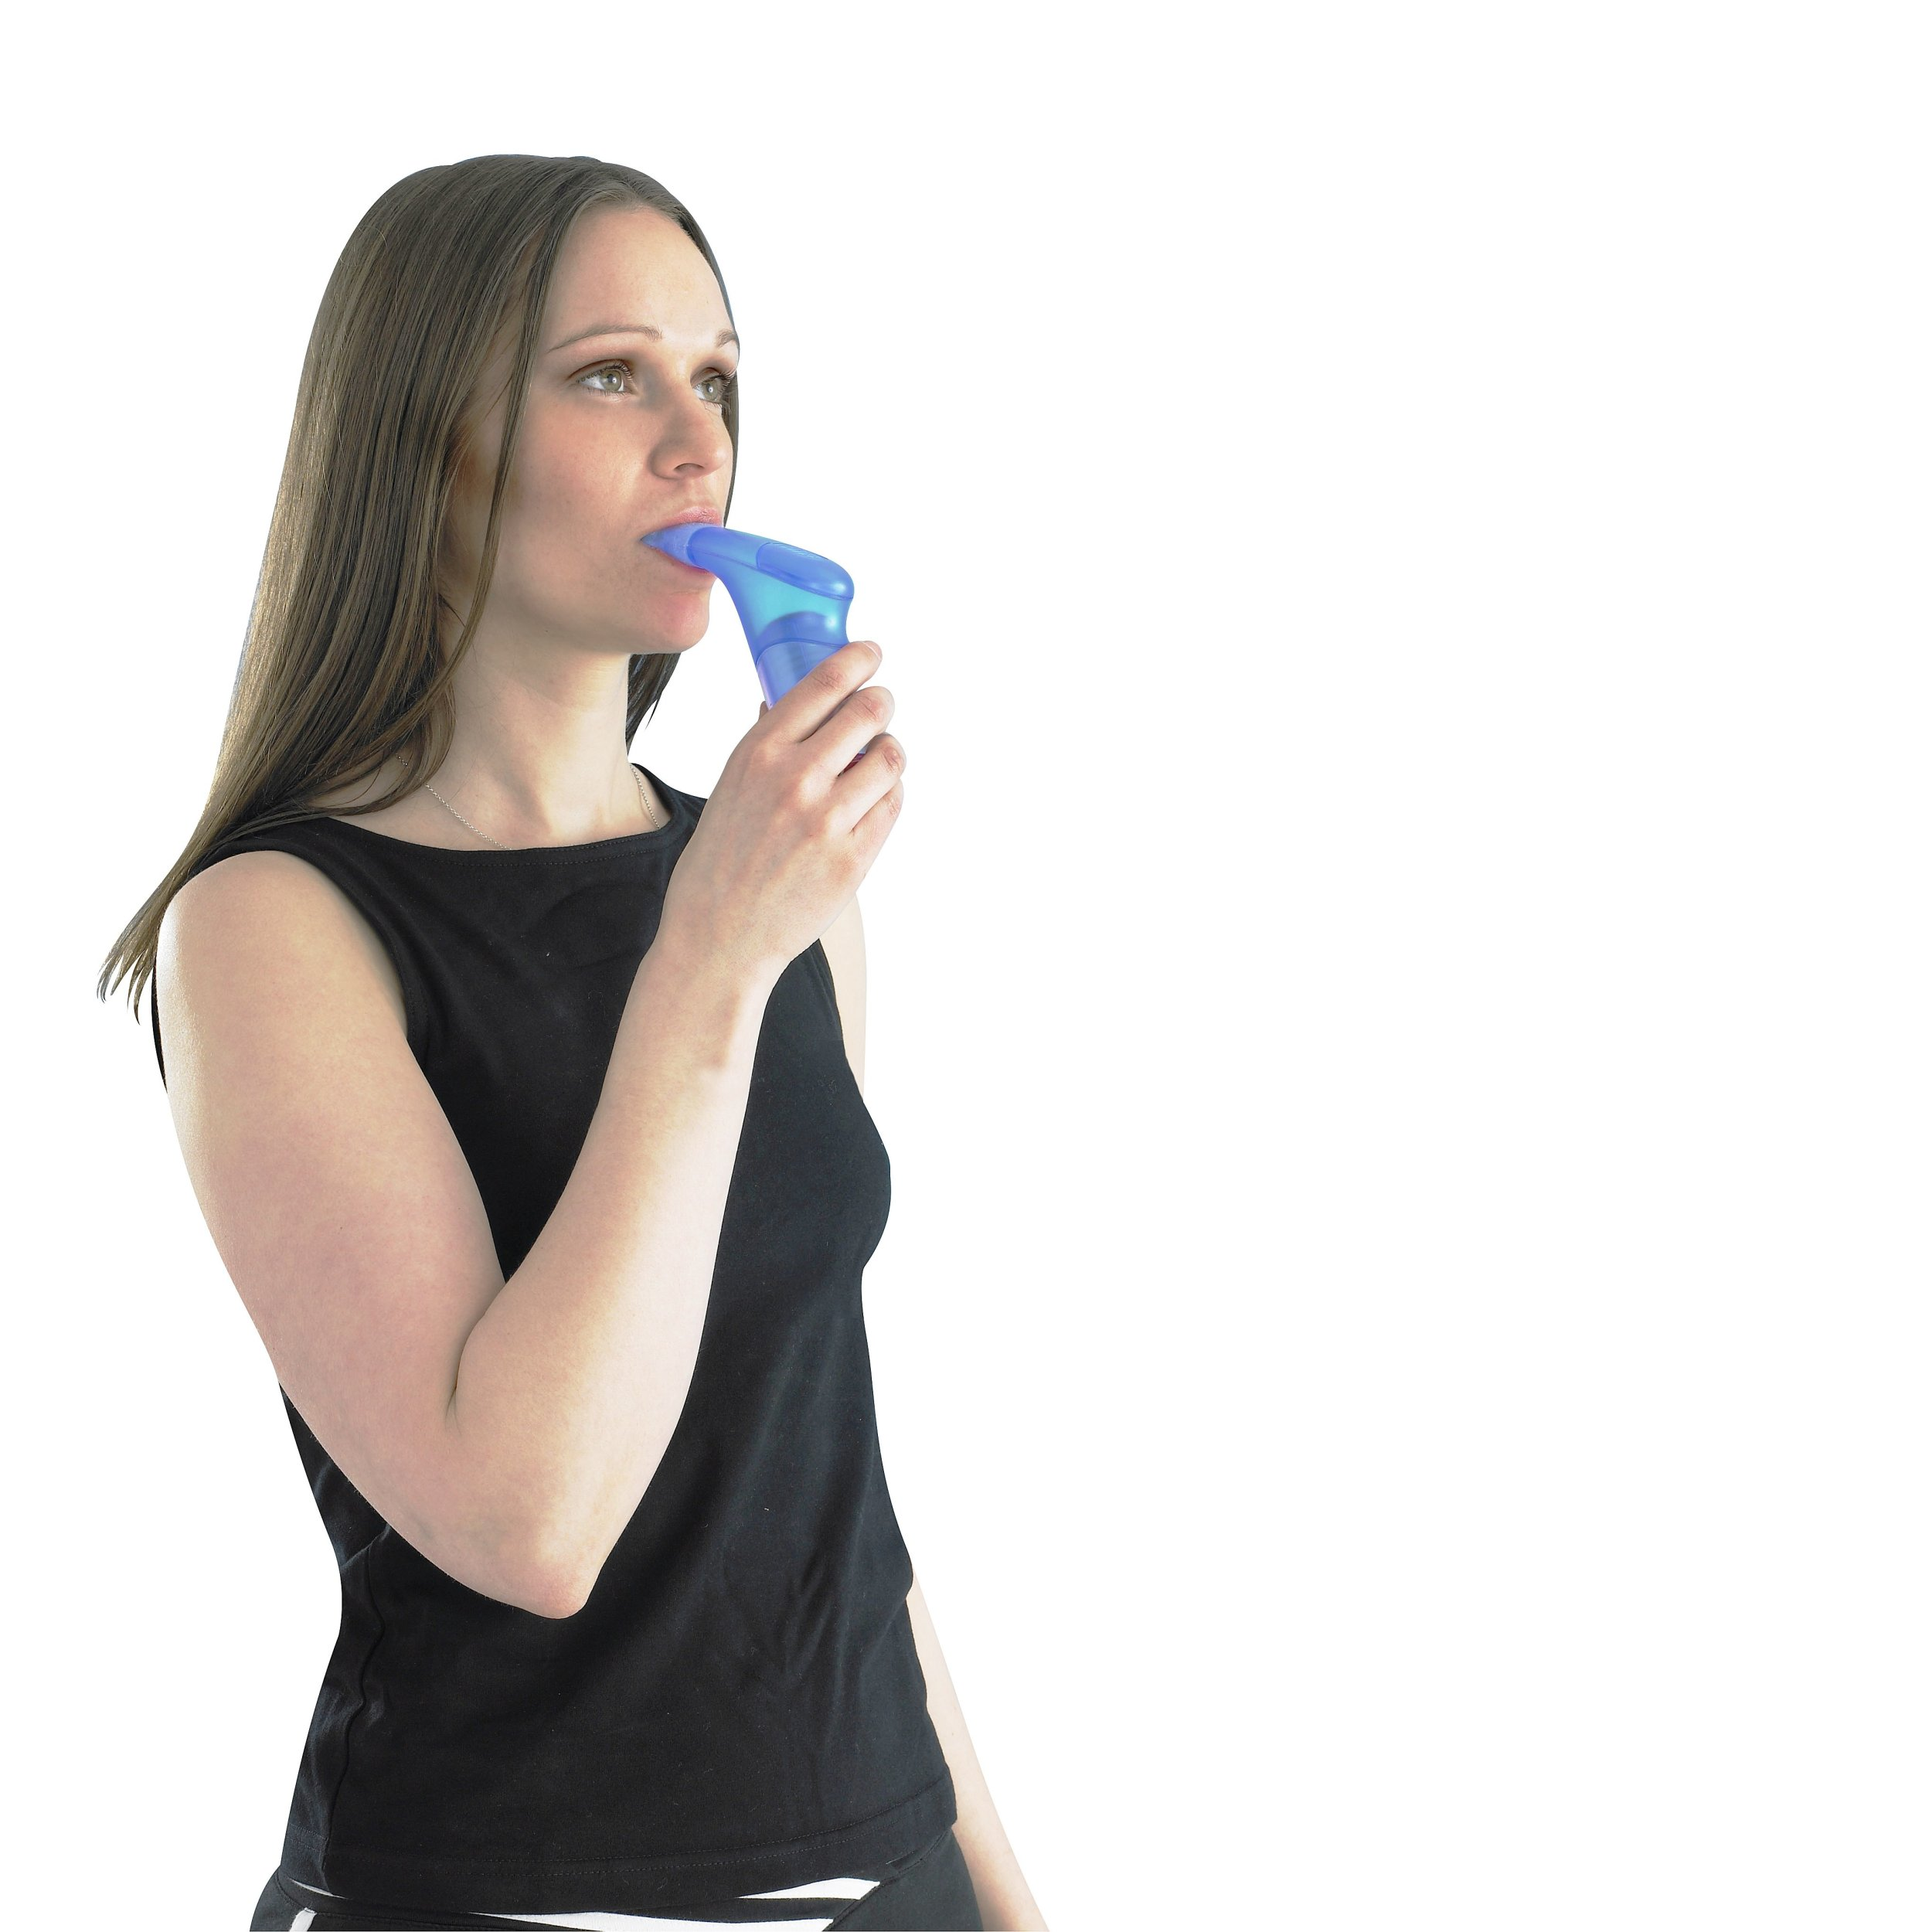 POWERbreathe Plus 2 Fitness Breathing Muscle Trainer Model LSI-Plus2 by Power Breathe